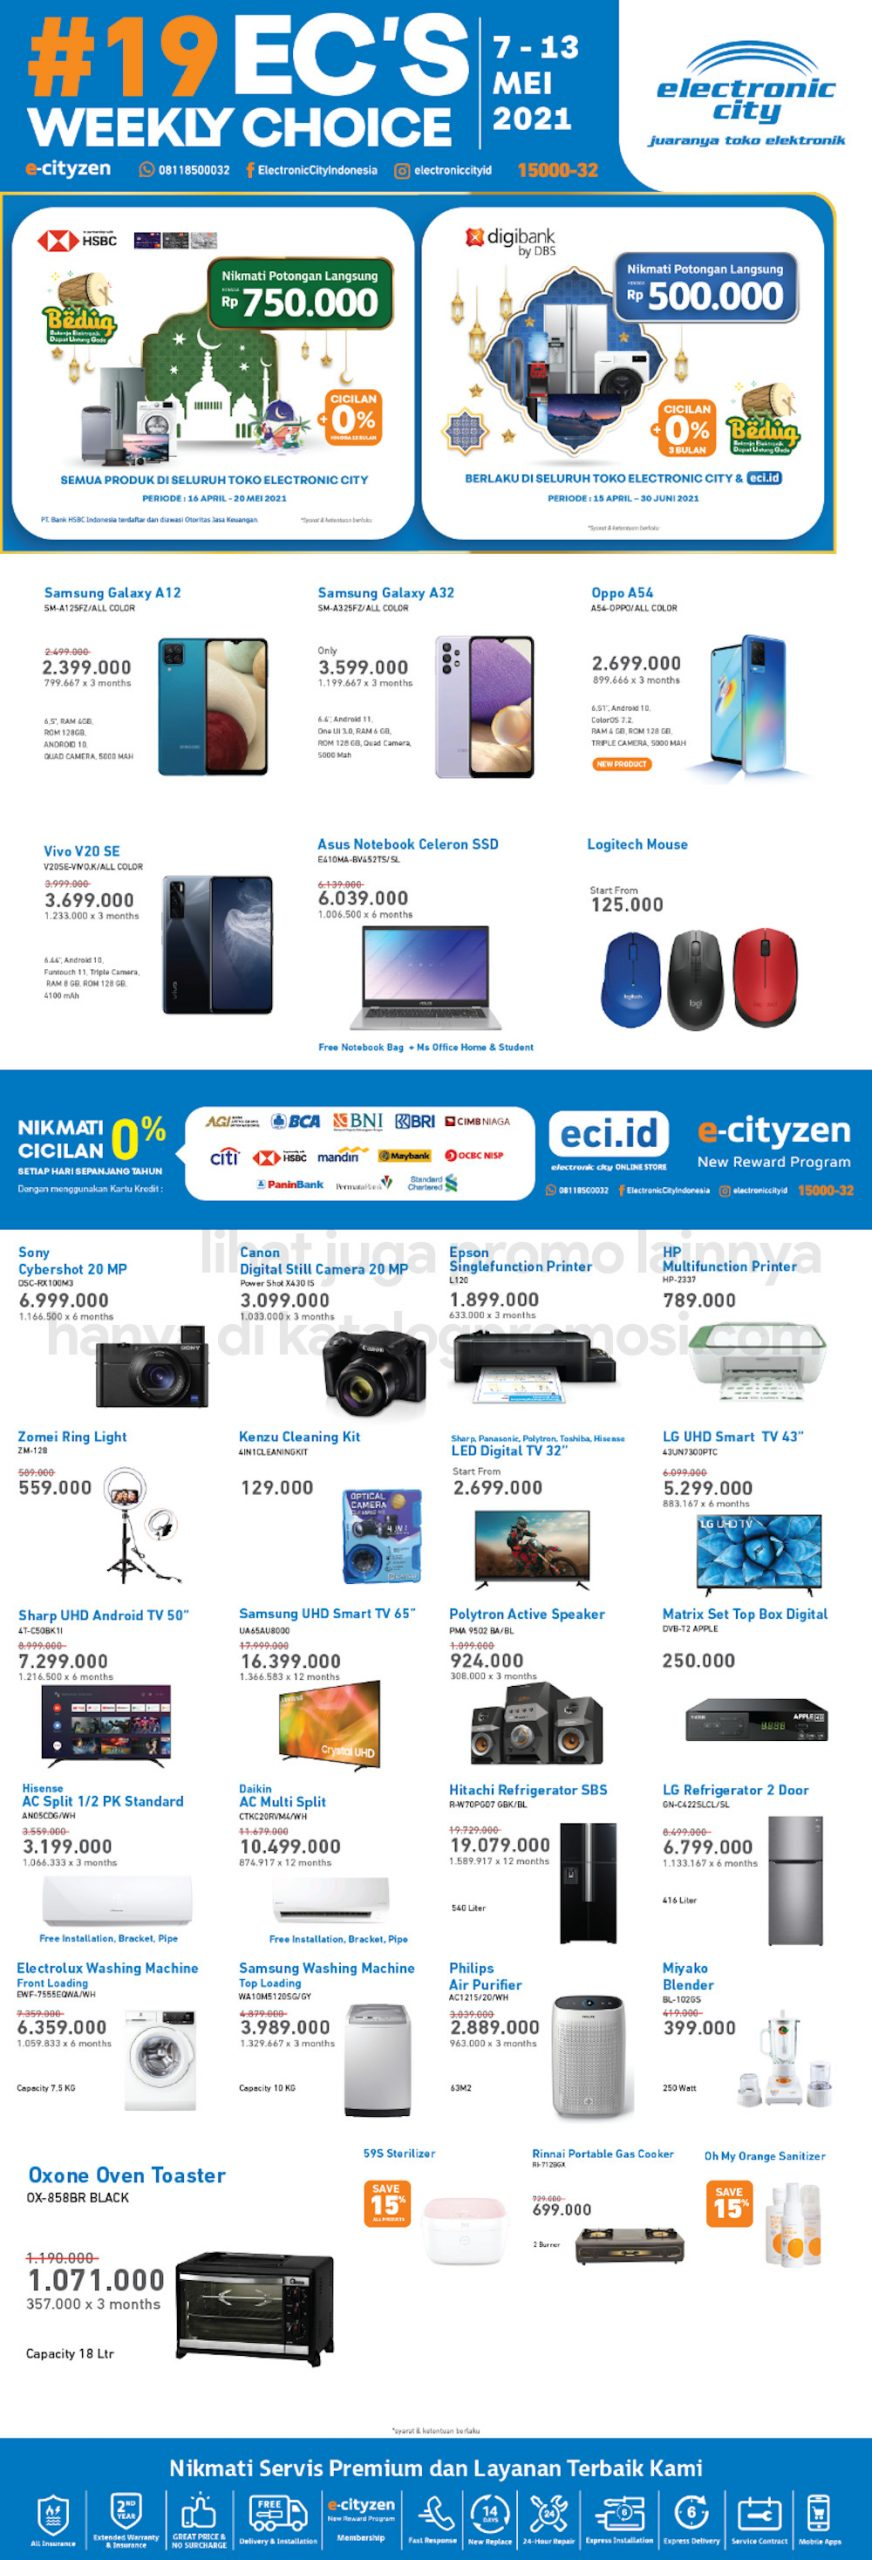 Promo Electronic City Katalog Weekly Special periode 07-13 Mei 2021